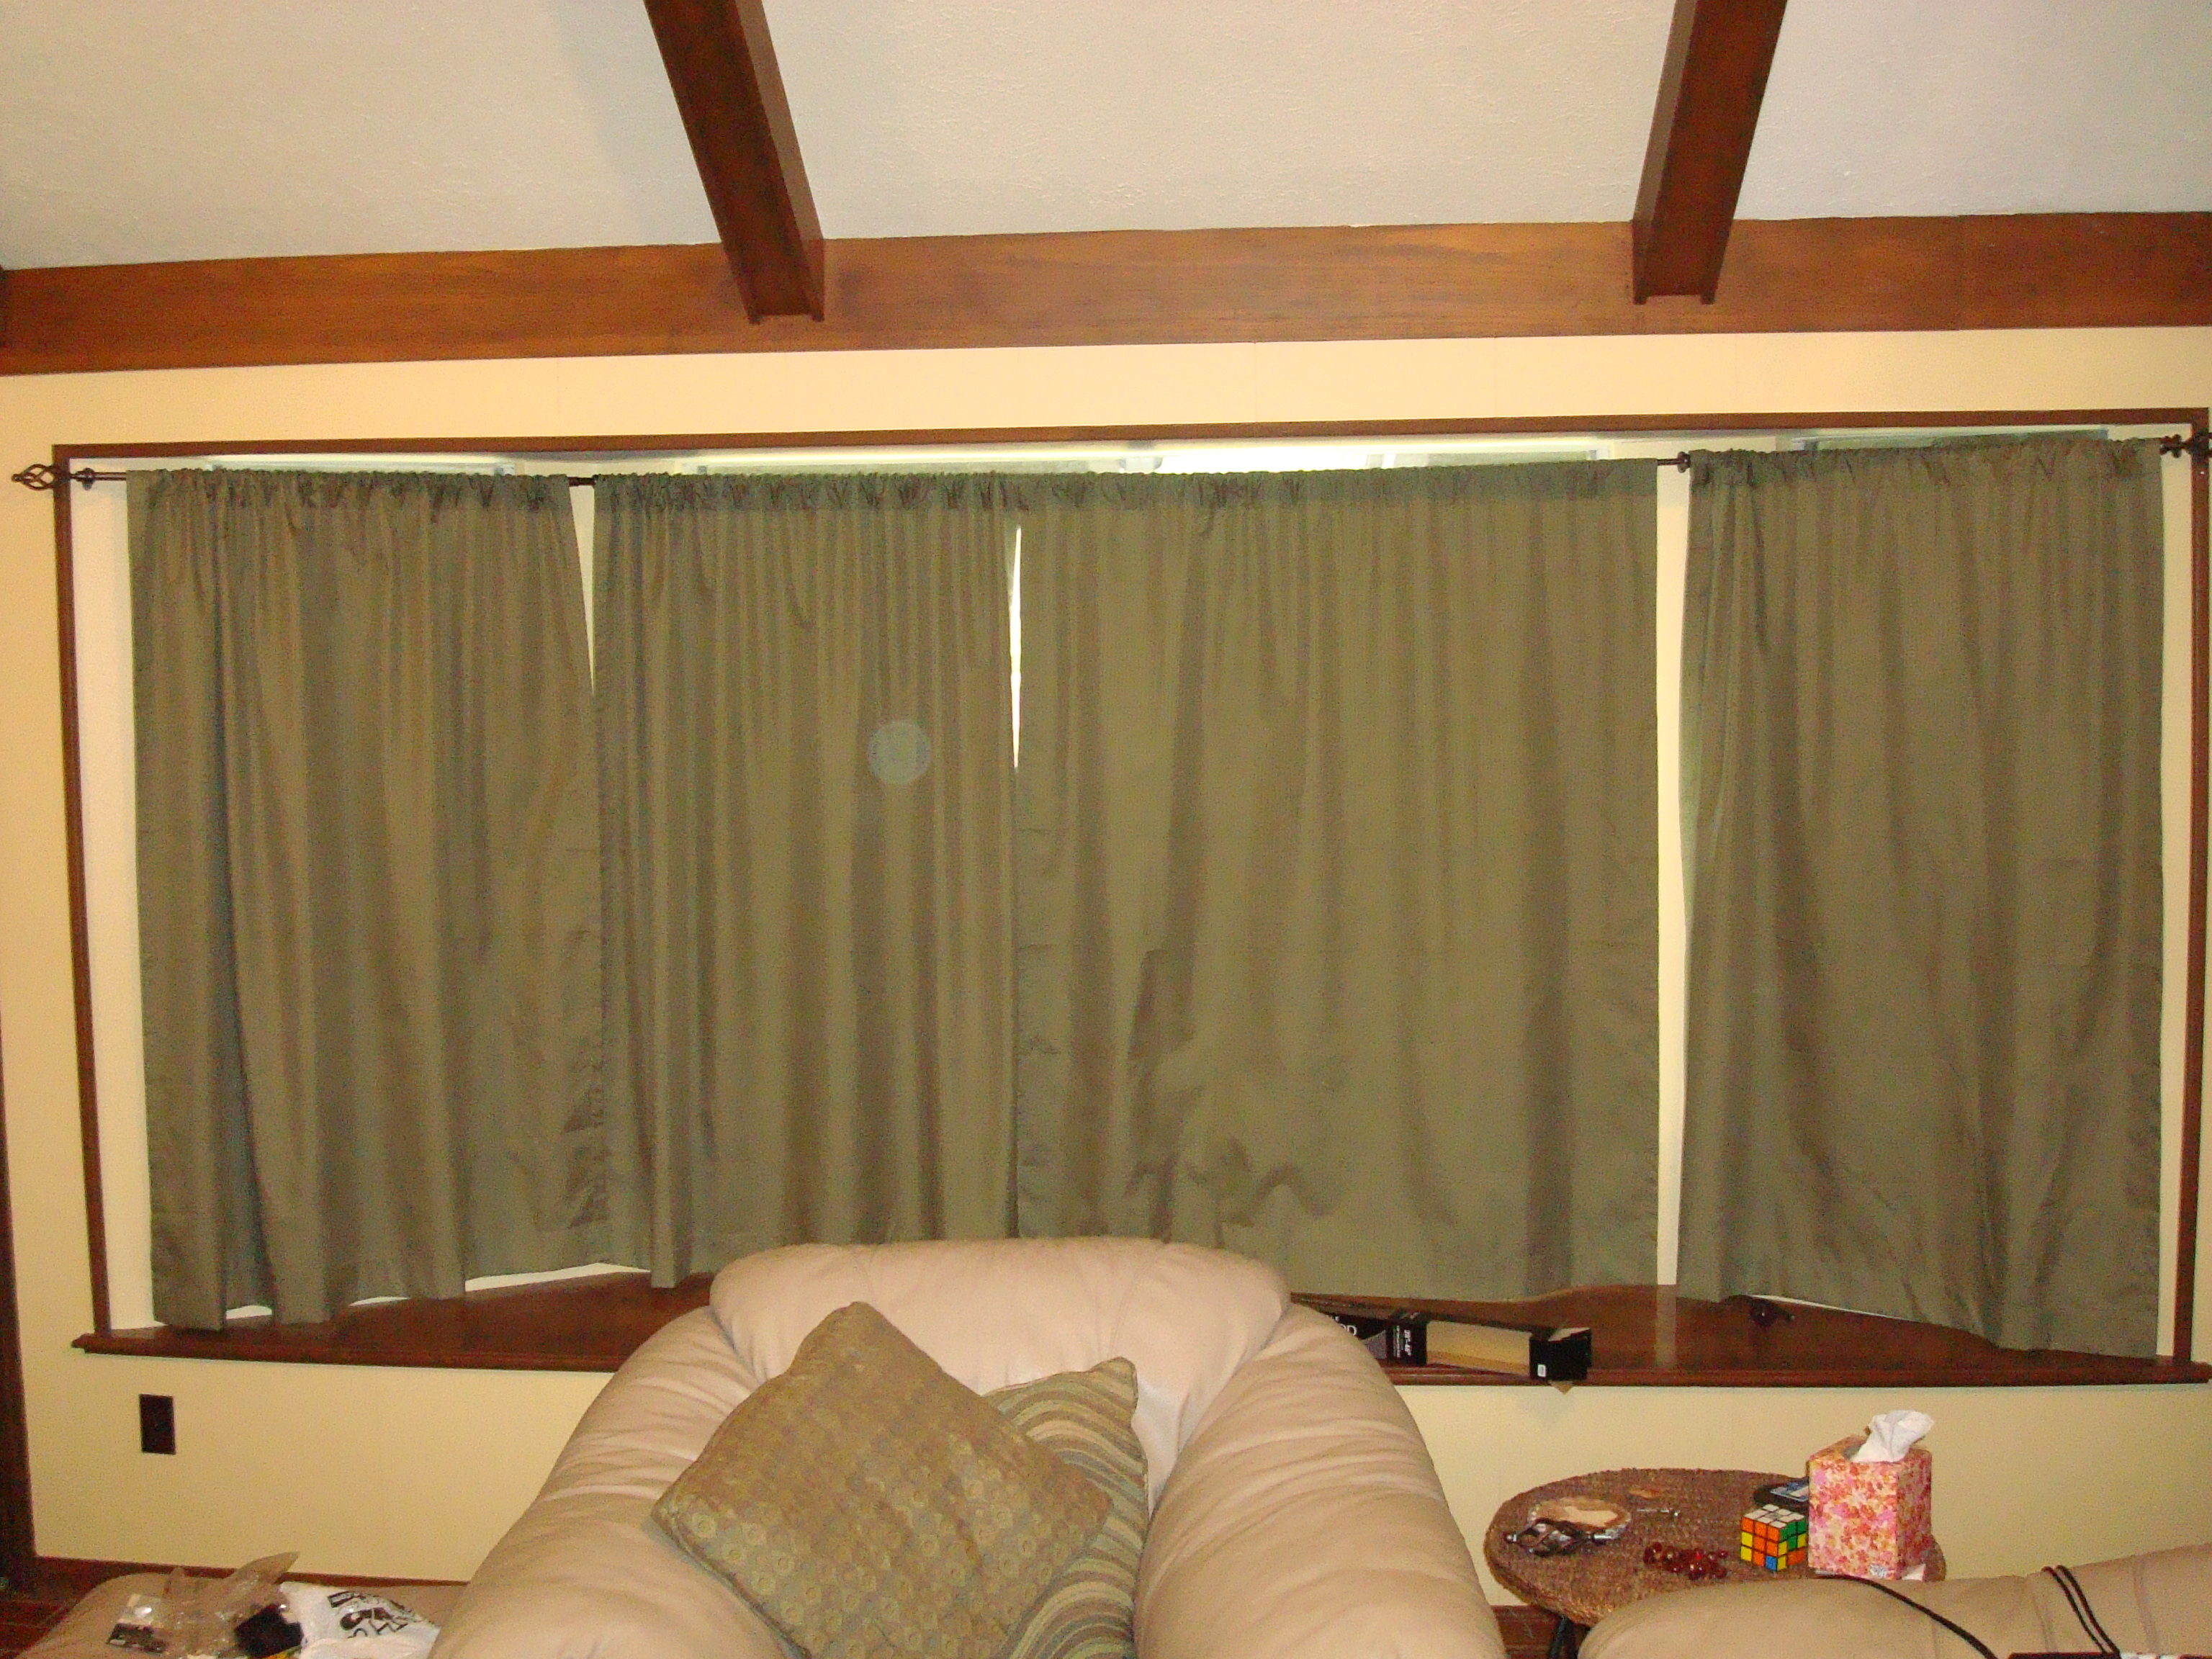 hurst castle not a big fan it s just a lot of green fabric hanging there i do however like the way it looks with the curtains open